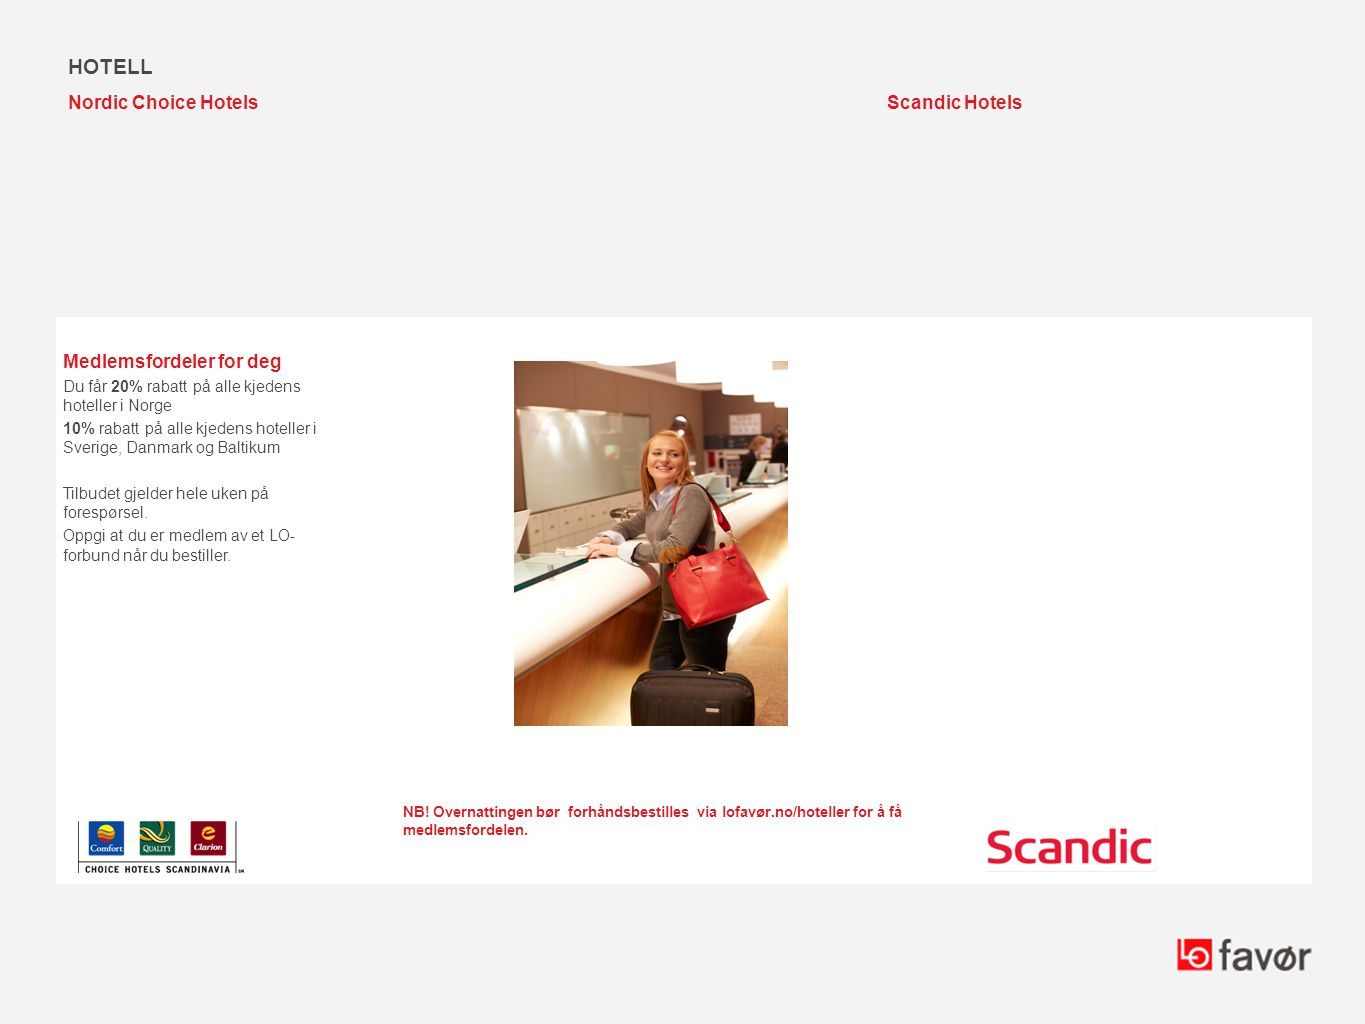 hotell Nordic Choice Hotels Scandic Hotels Medlemsfordeler for deg